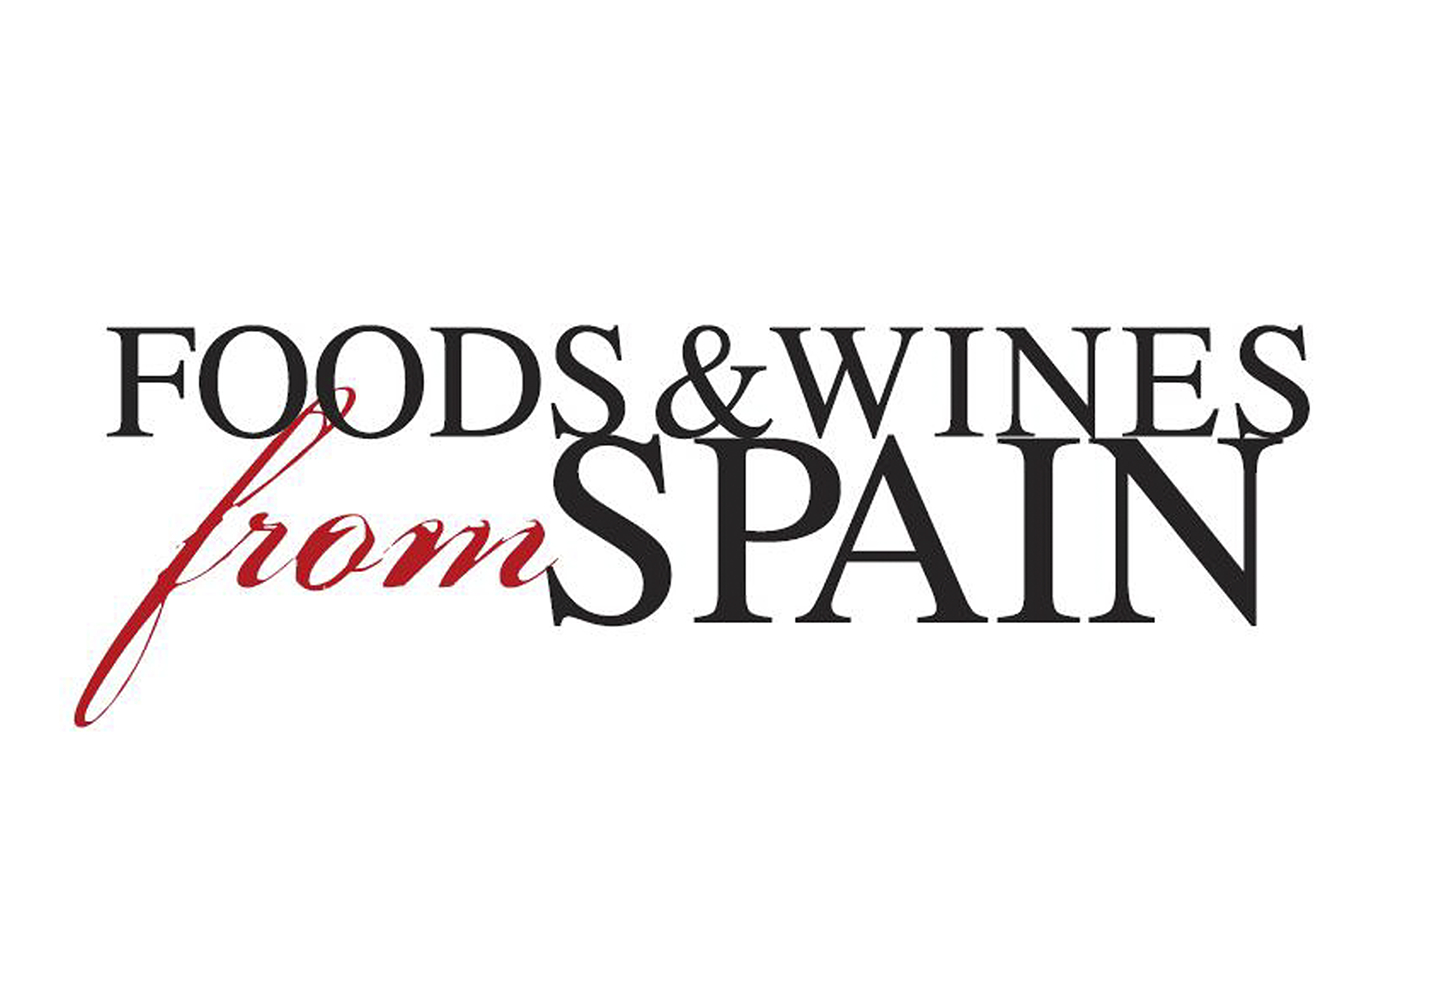 Foods & Wines from Spain logo